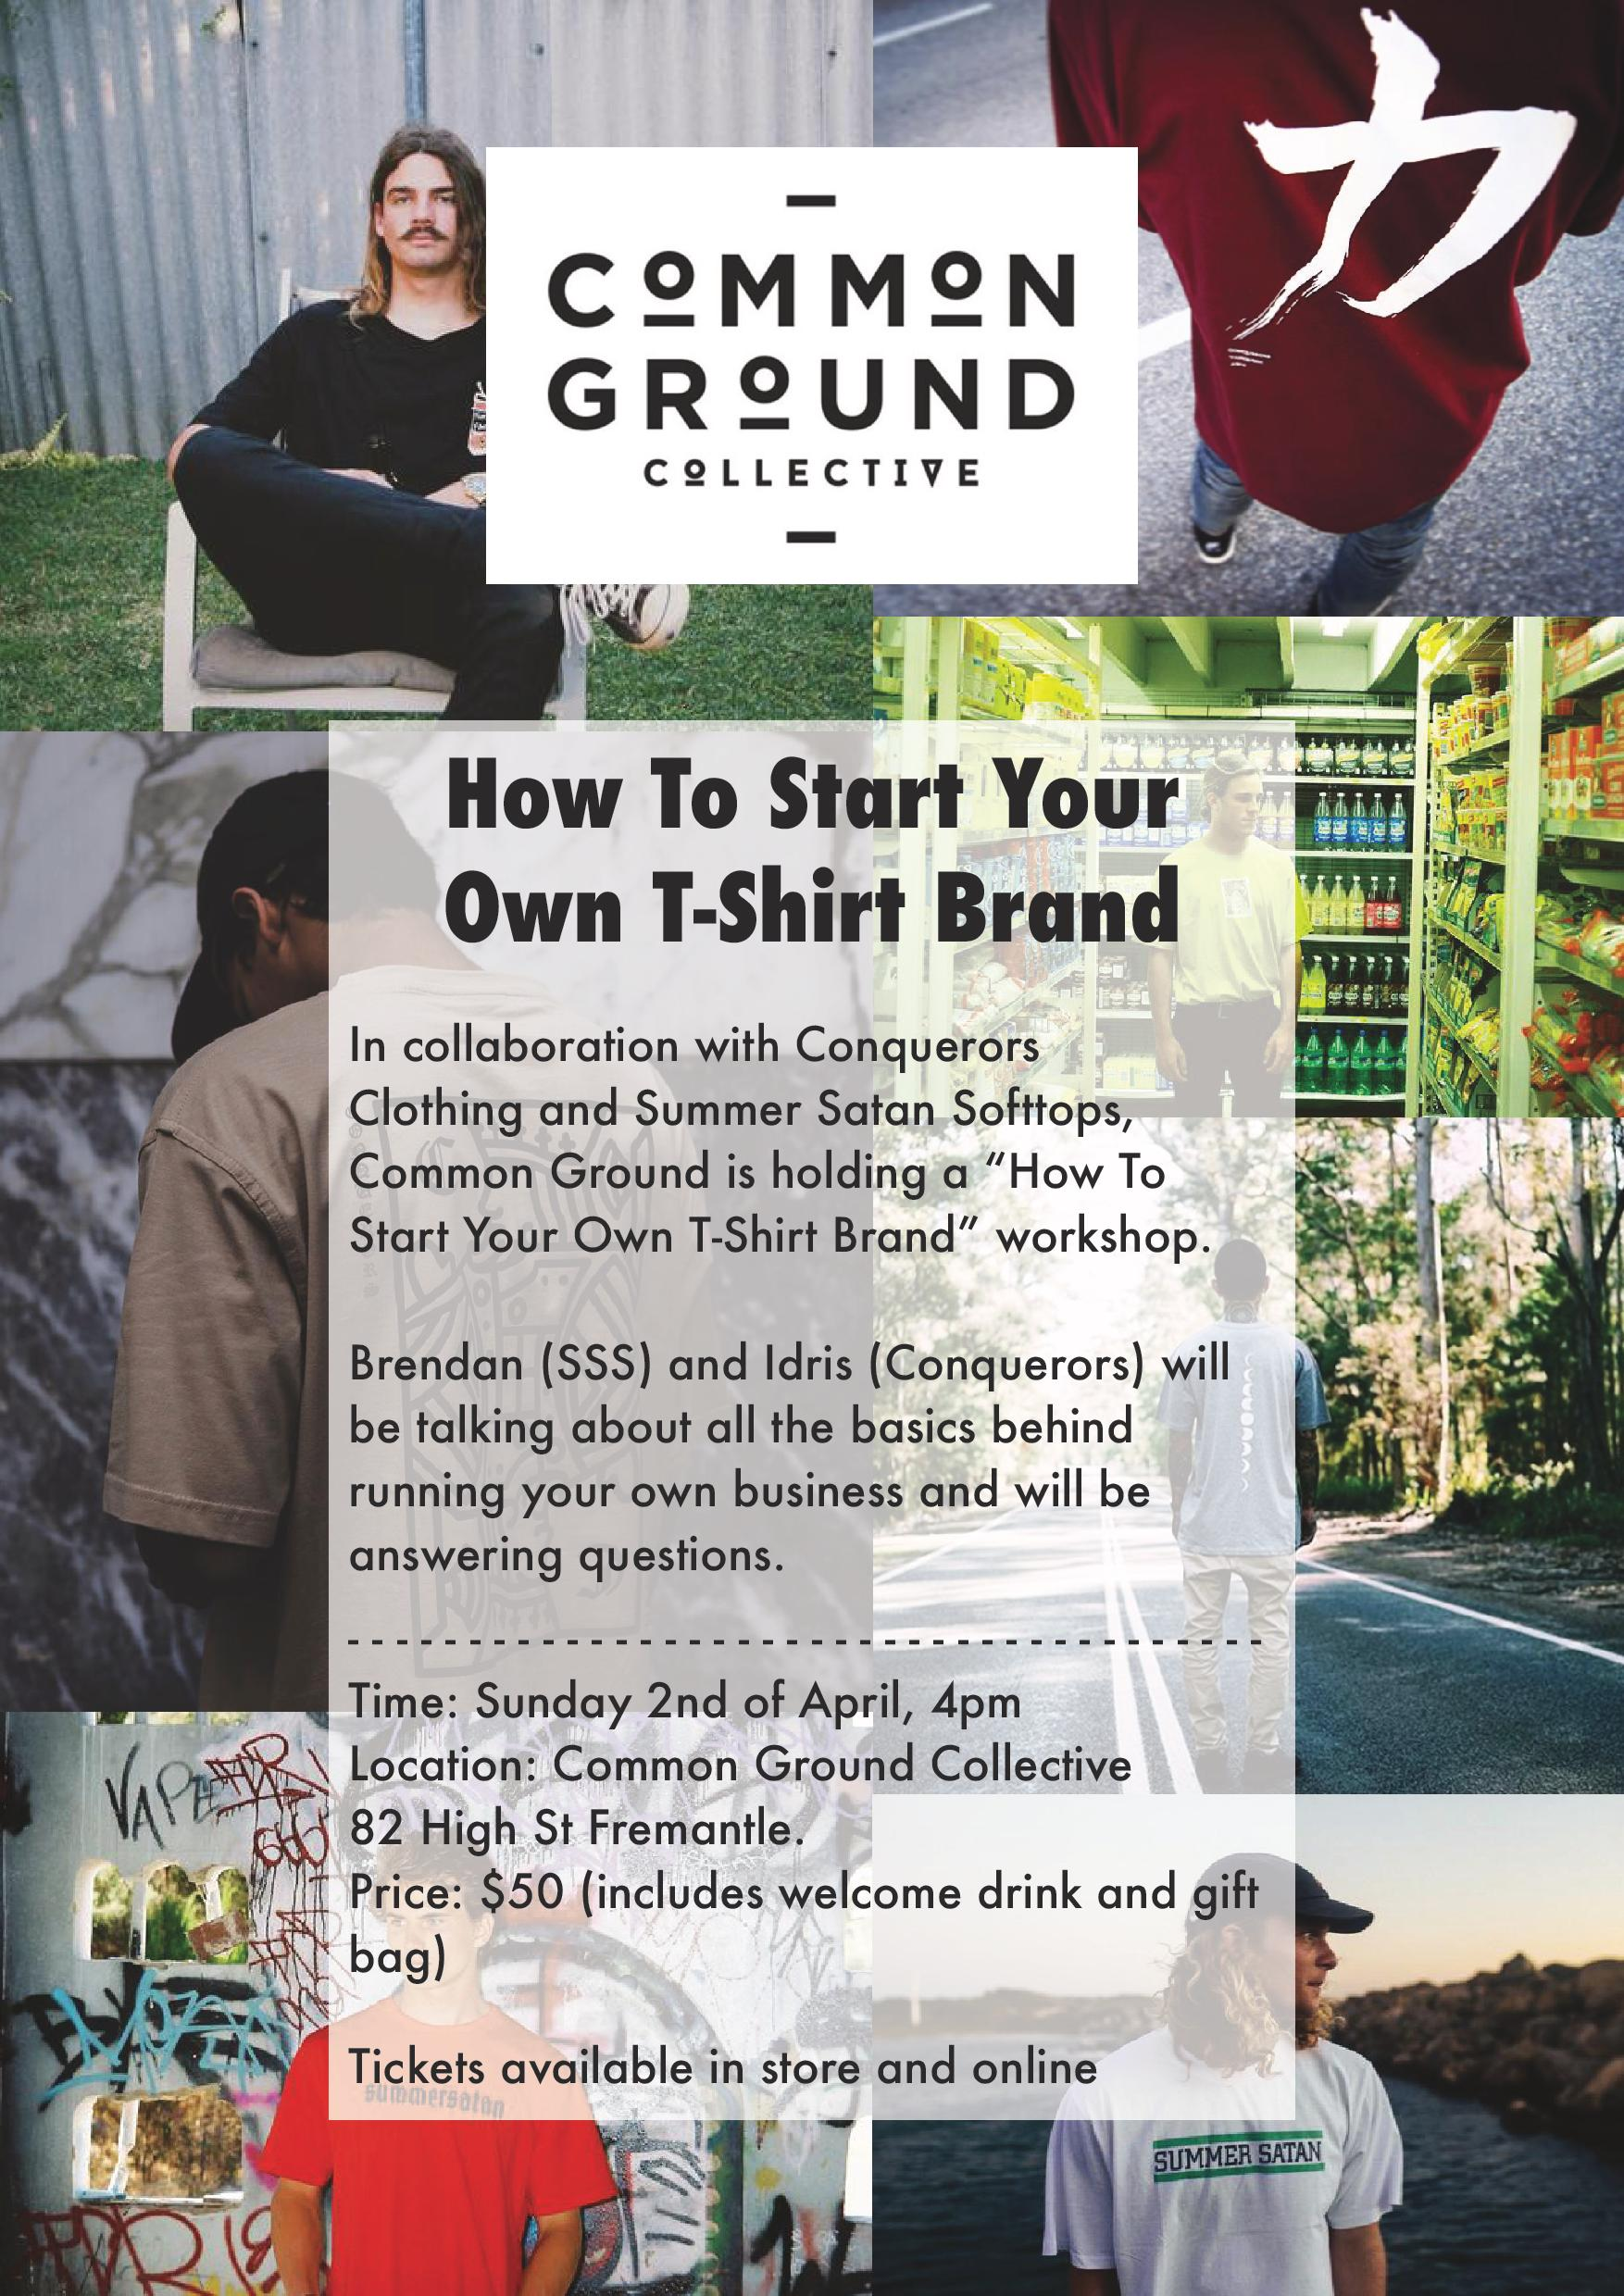 how to start your own t shirt brand with common ground